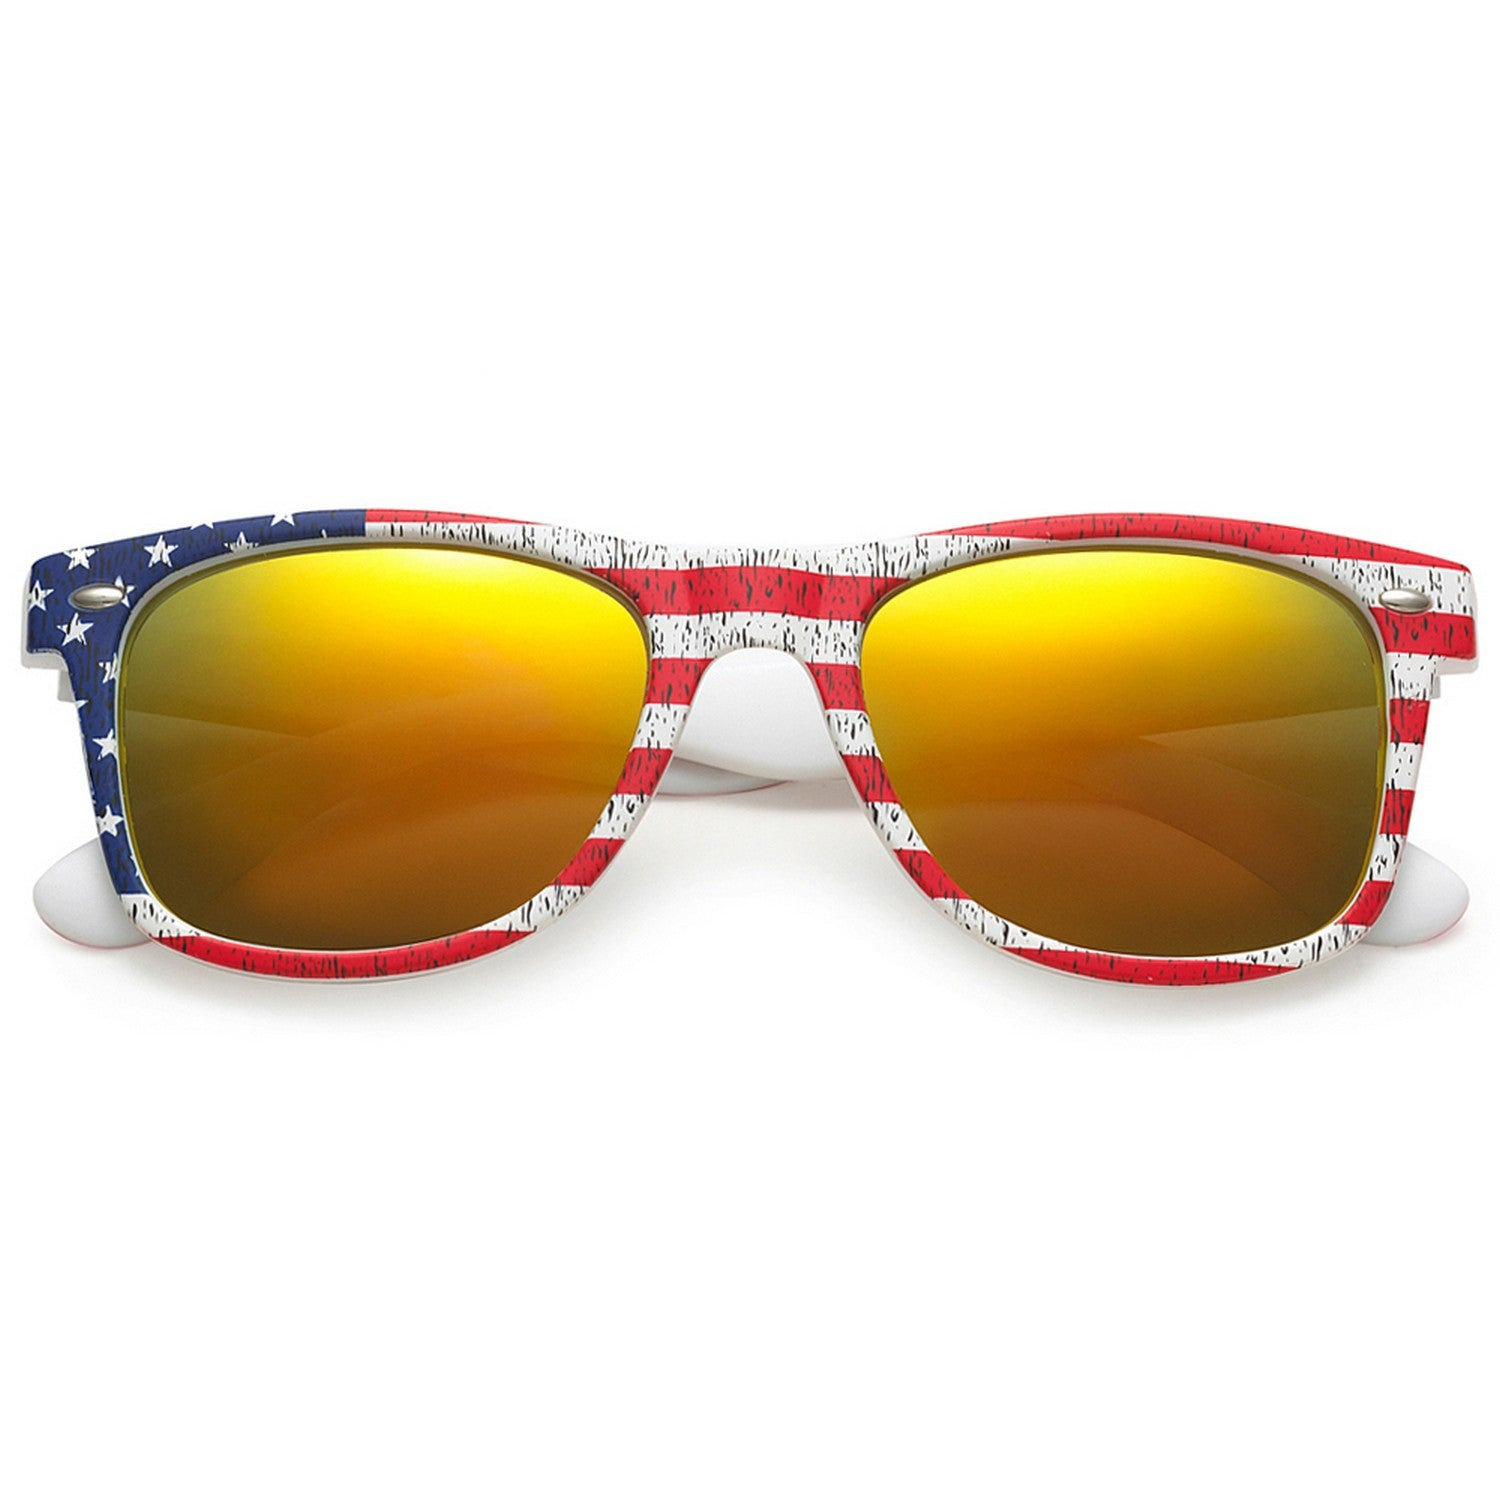 Polarspex Polarized 80's Retro Style Unisex Sunglasses with American Flag Frames and Lava Red Lenses